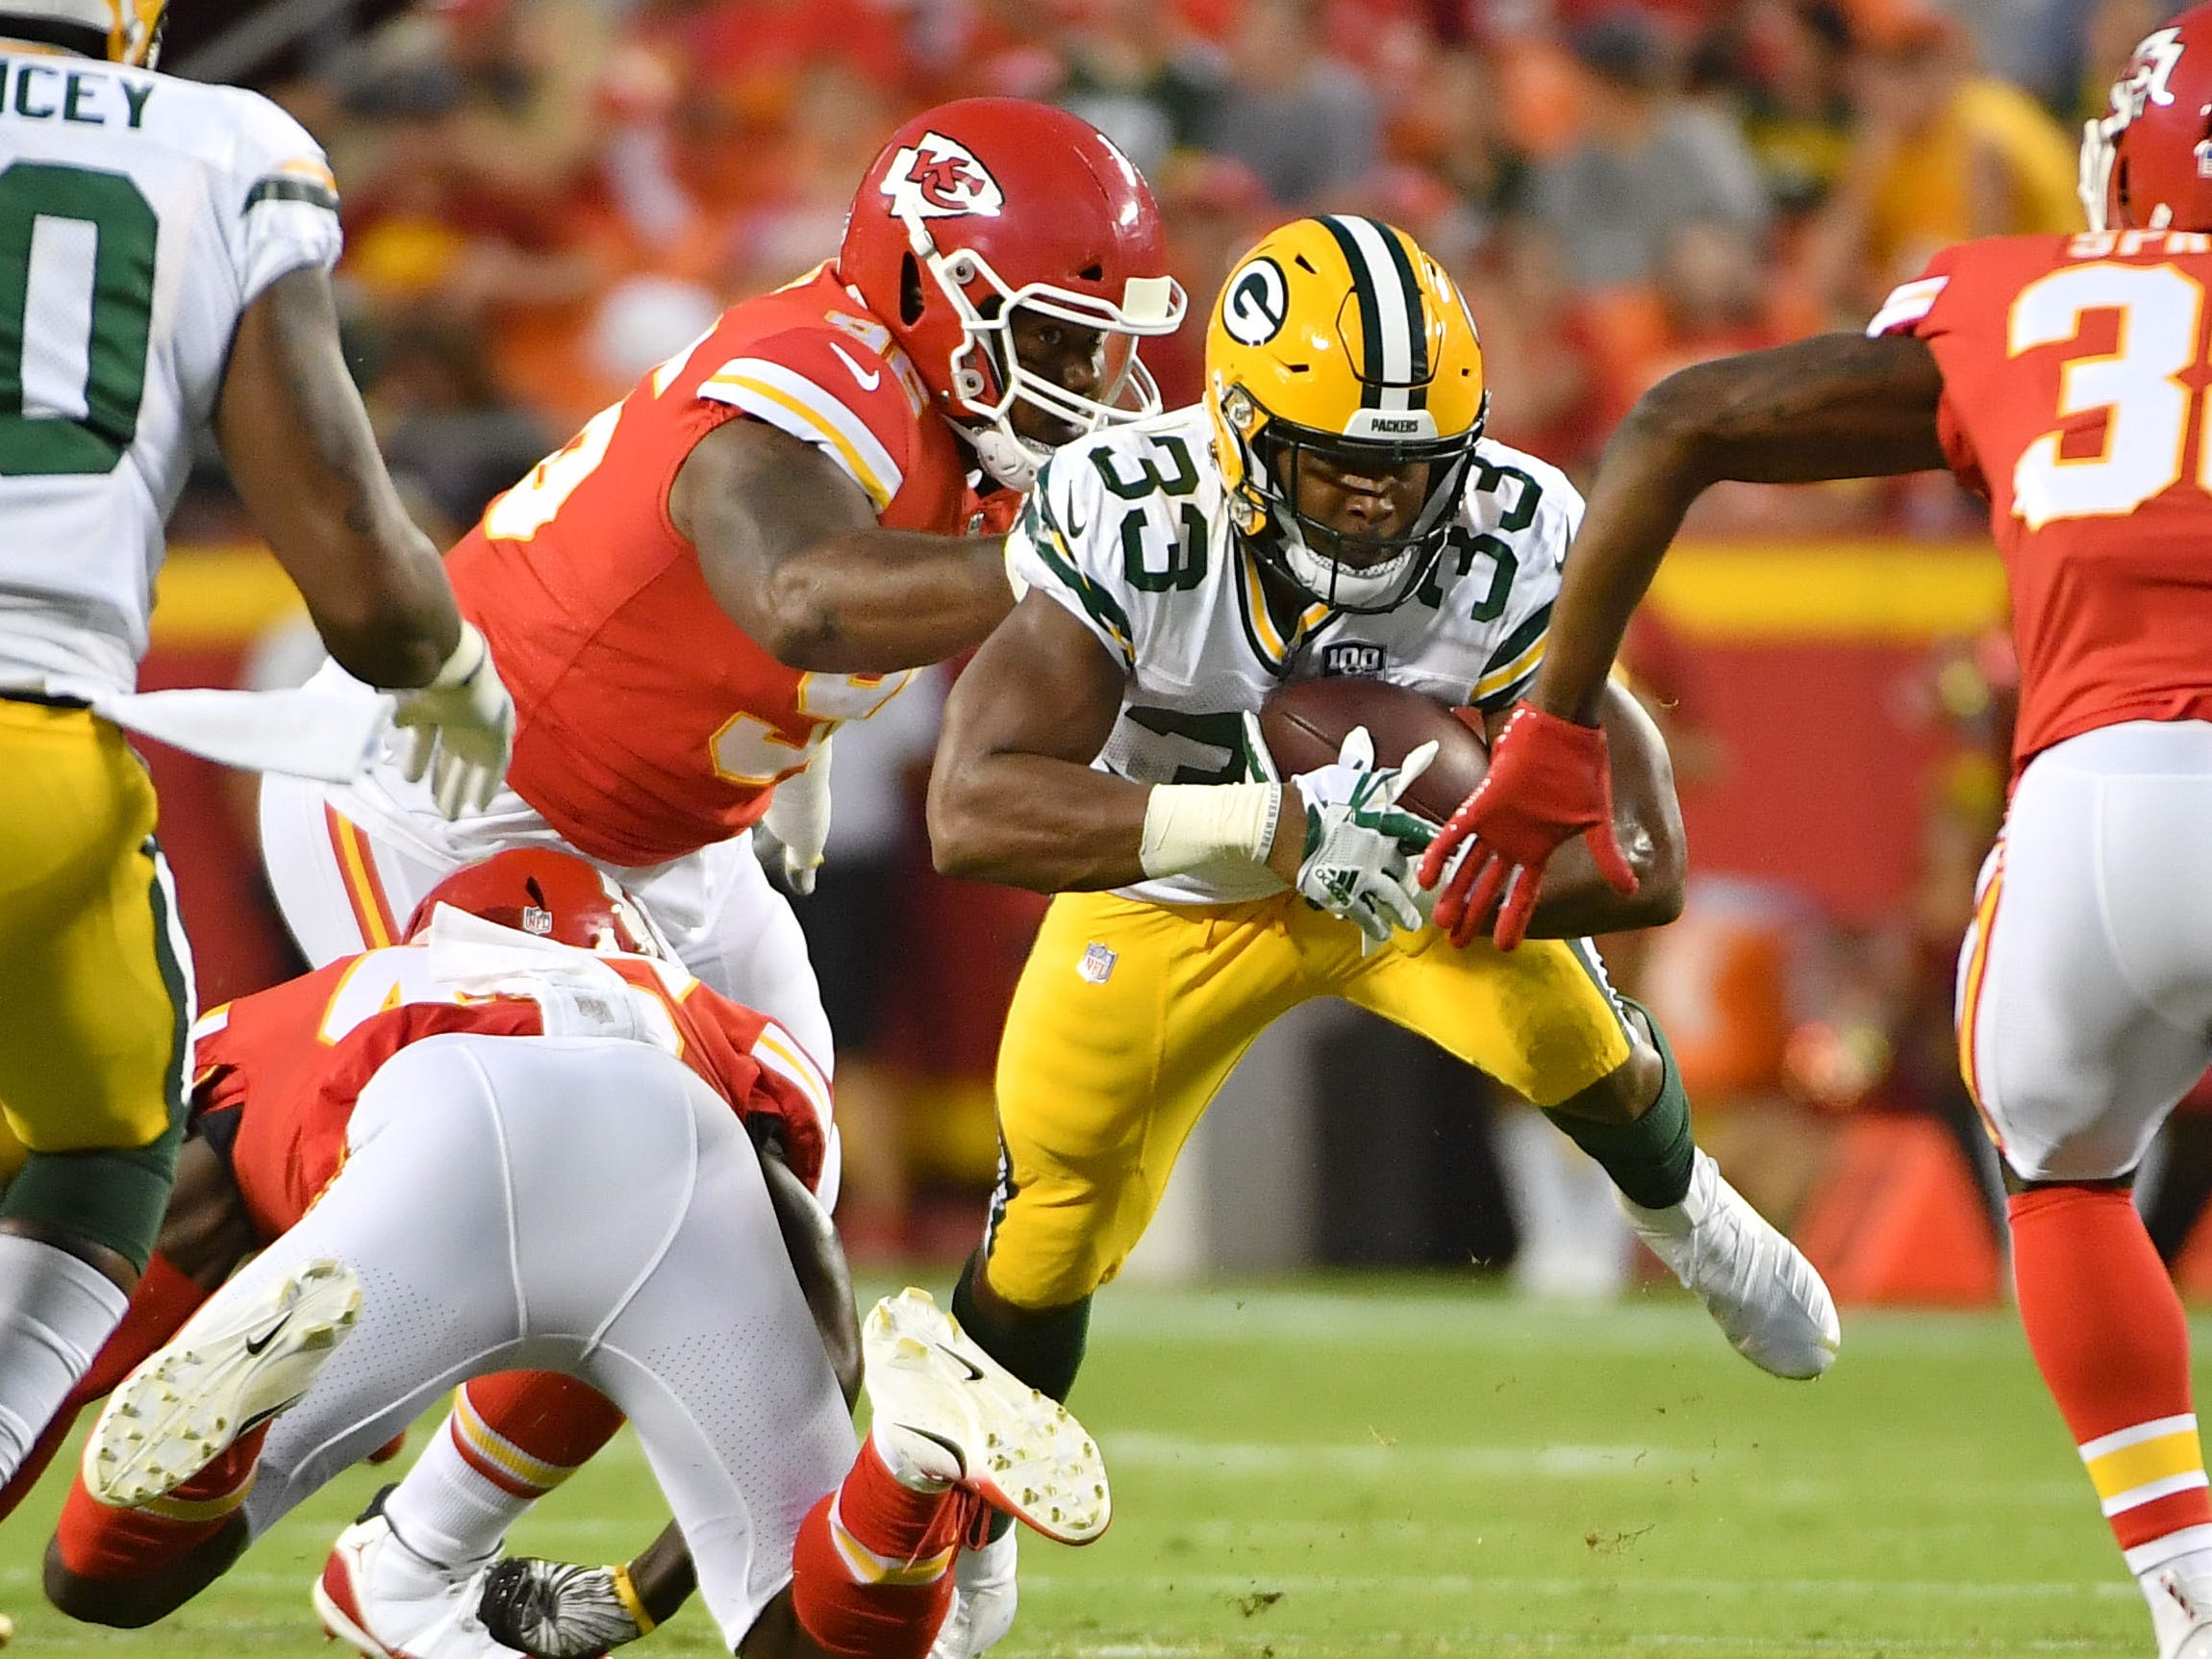 Green Bay Packers running back Aaron Jones runs the ball and is tackled by Kansas City Chiefs defensive back Leon III McQuay (34) during the first half at Arrowhead Stadium.